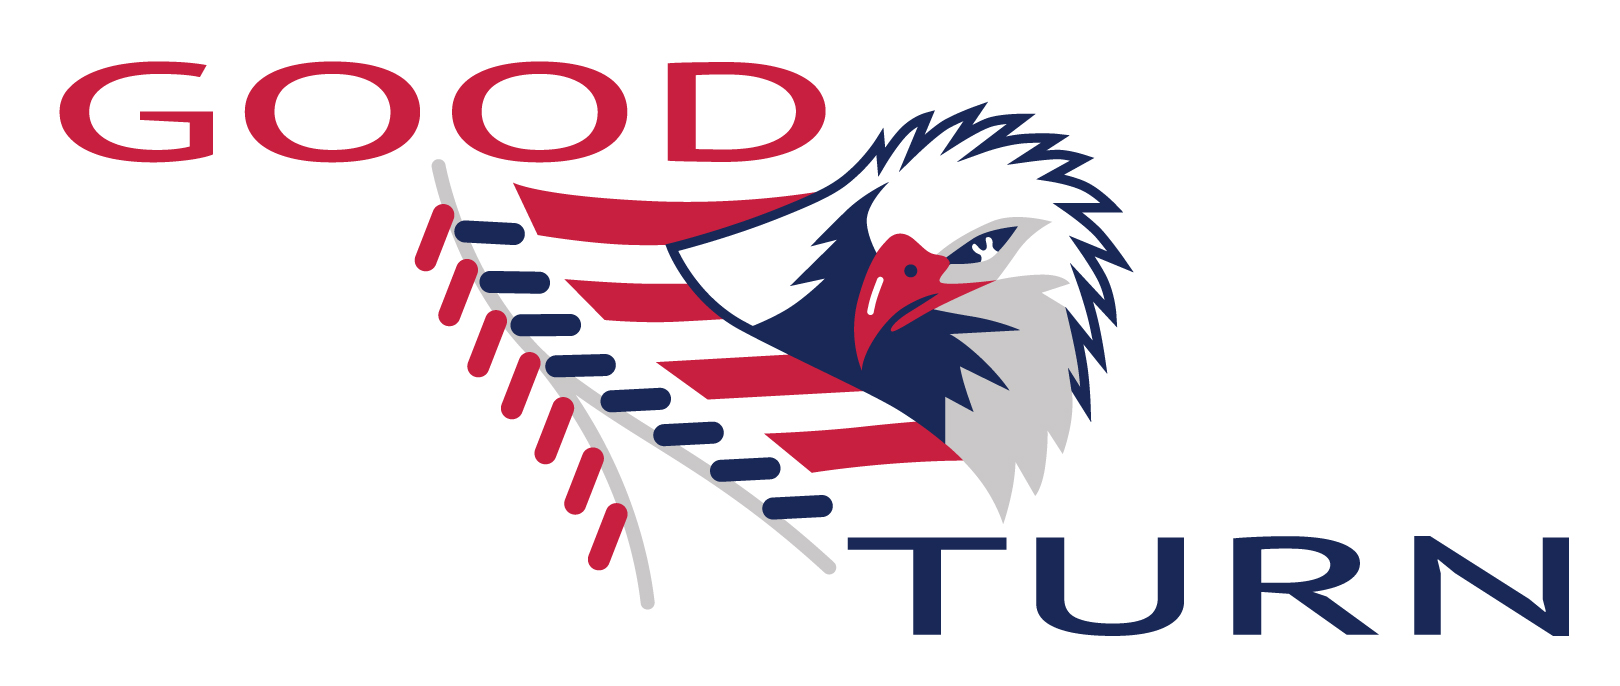 good-turn-logo-final-01-15-18-alt.jpg